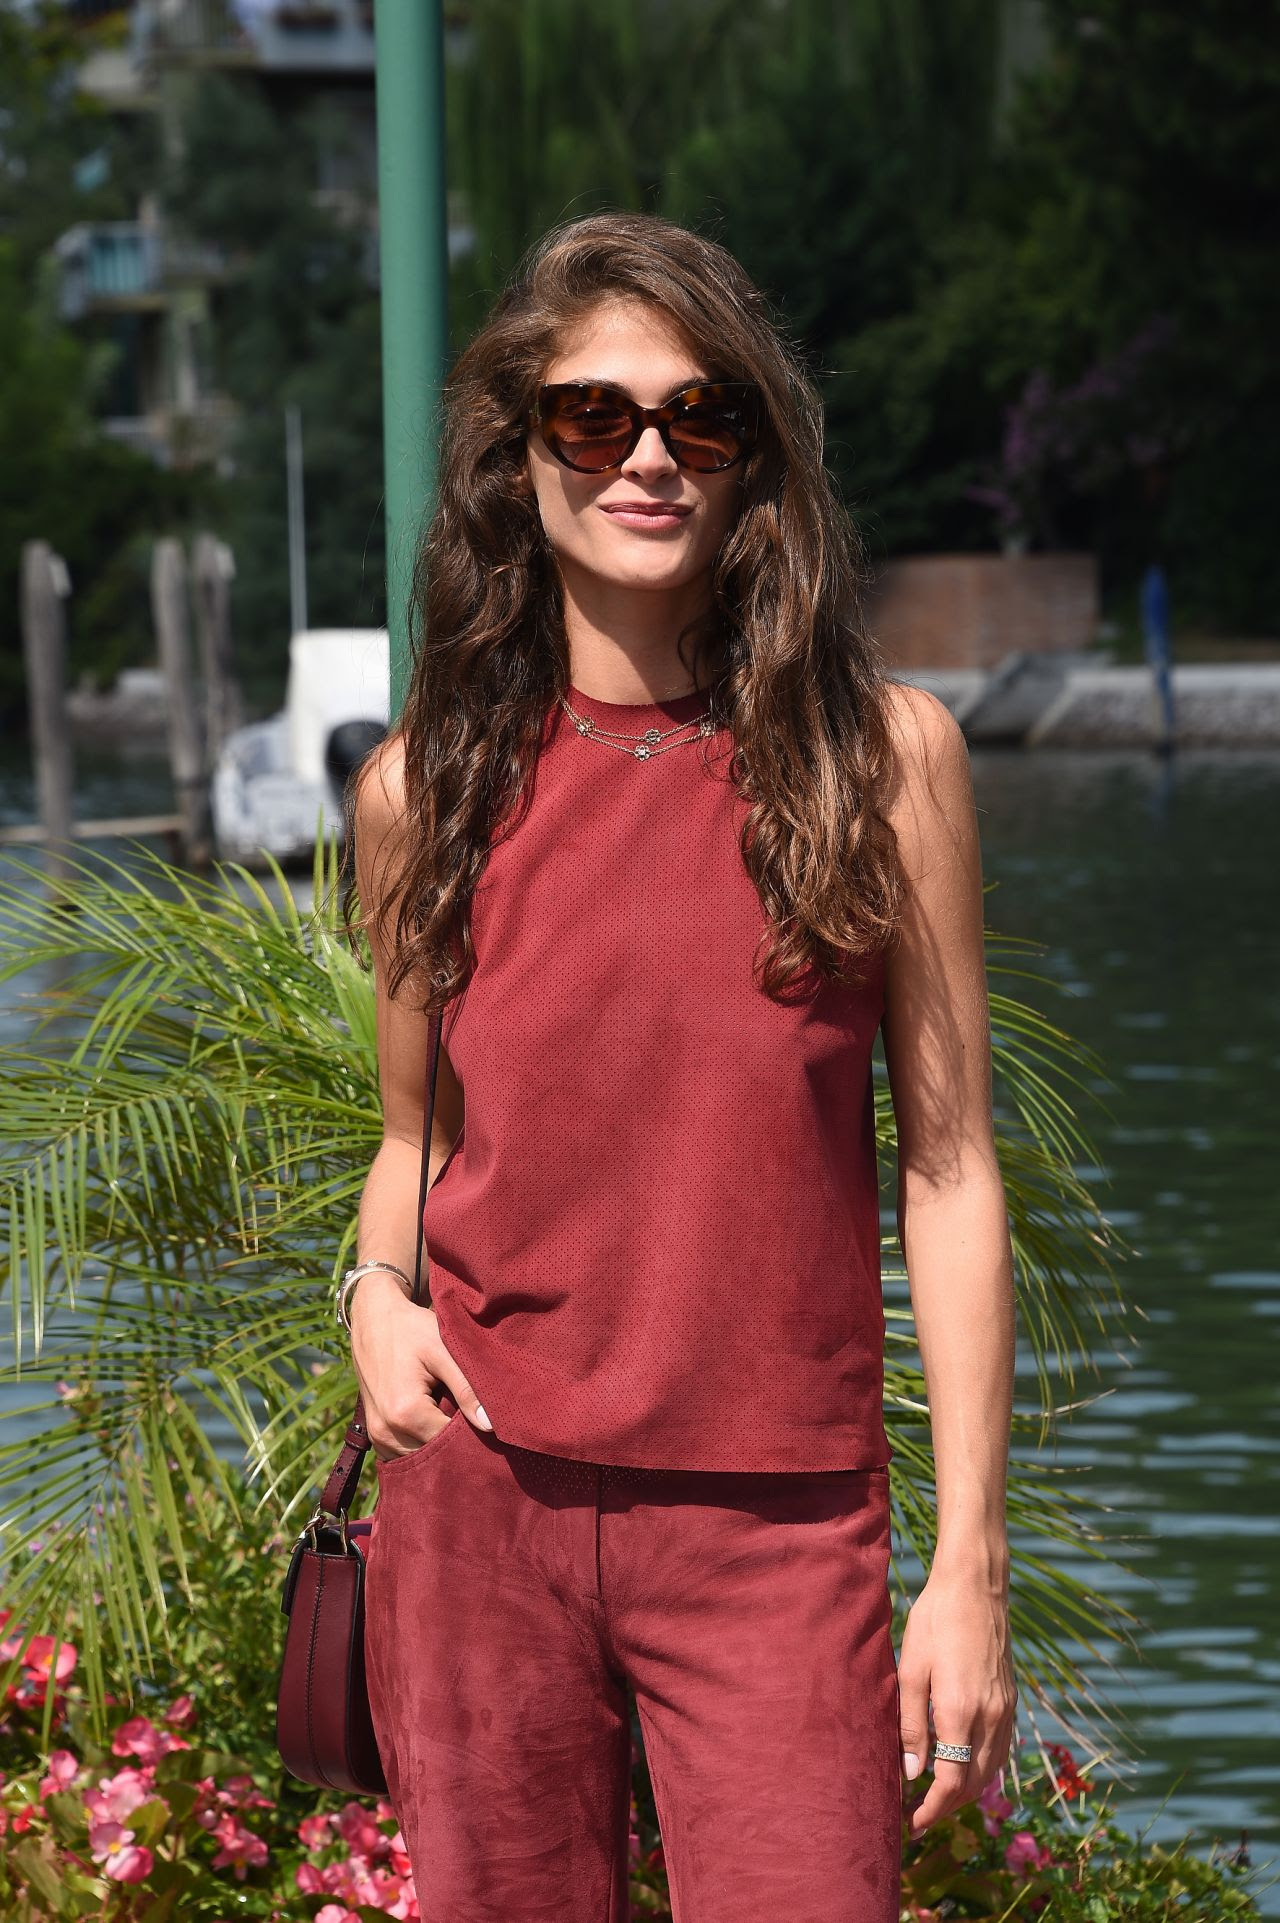 http://celebmafia.com/wp-content/uploads/2015/09/elisa-sednaoui-arrives-at-the-lido-for-the-72nd-venice-film-festival_1.jpg